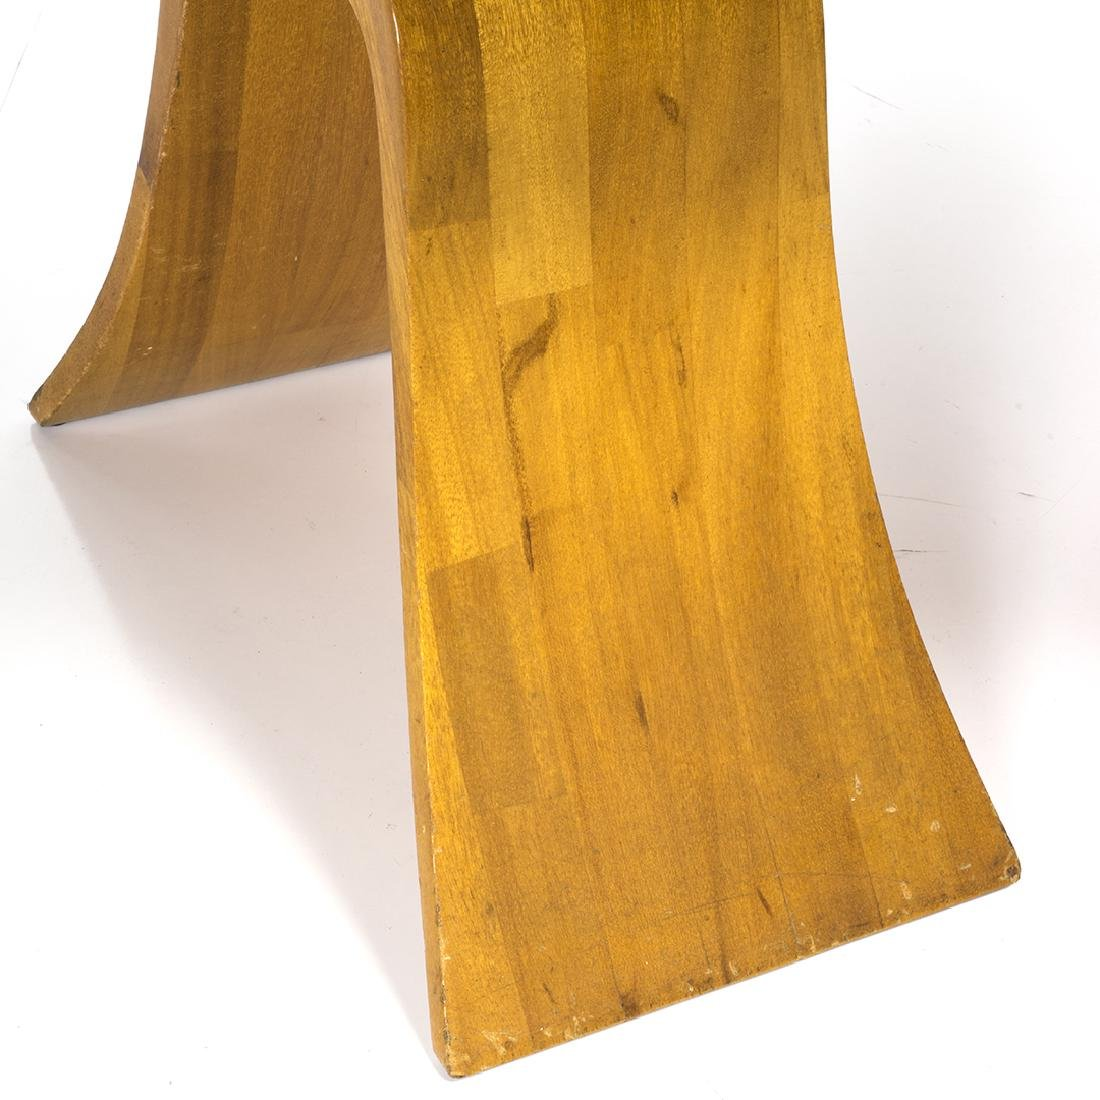 Paul Frankl Occasional Tables (2) - 5